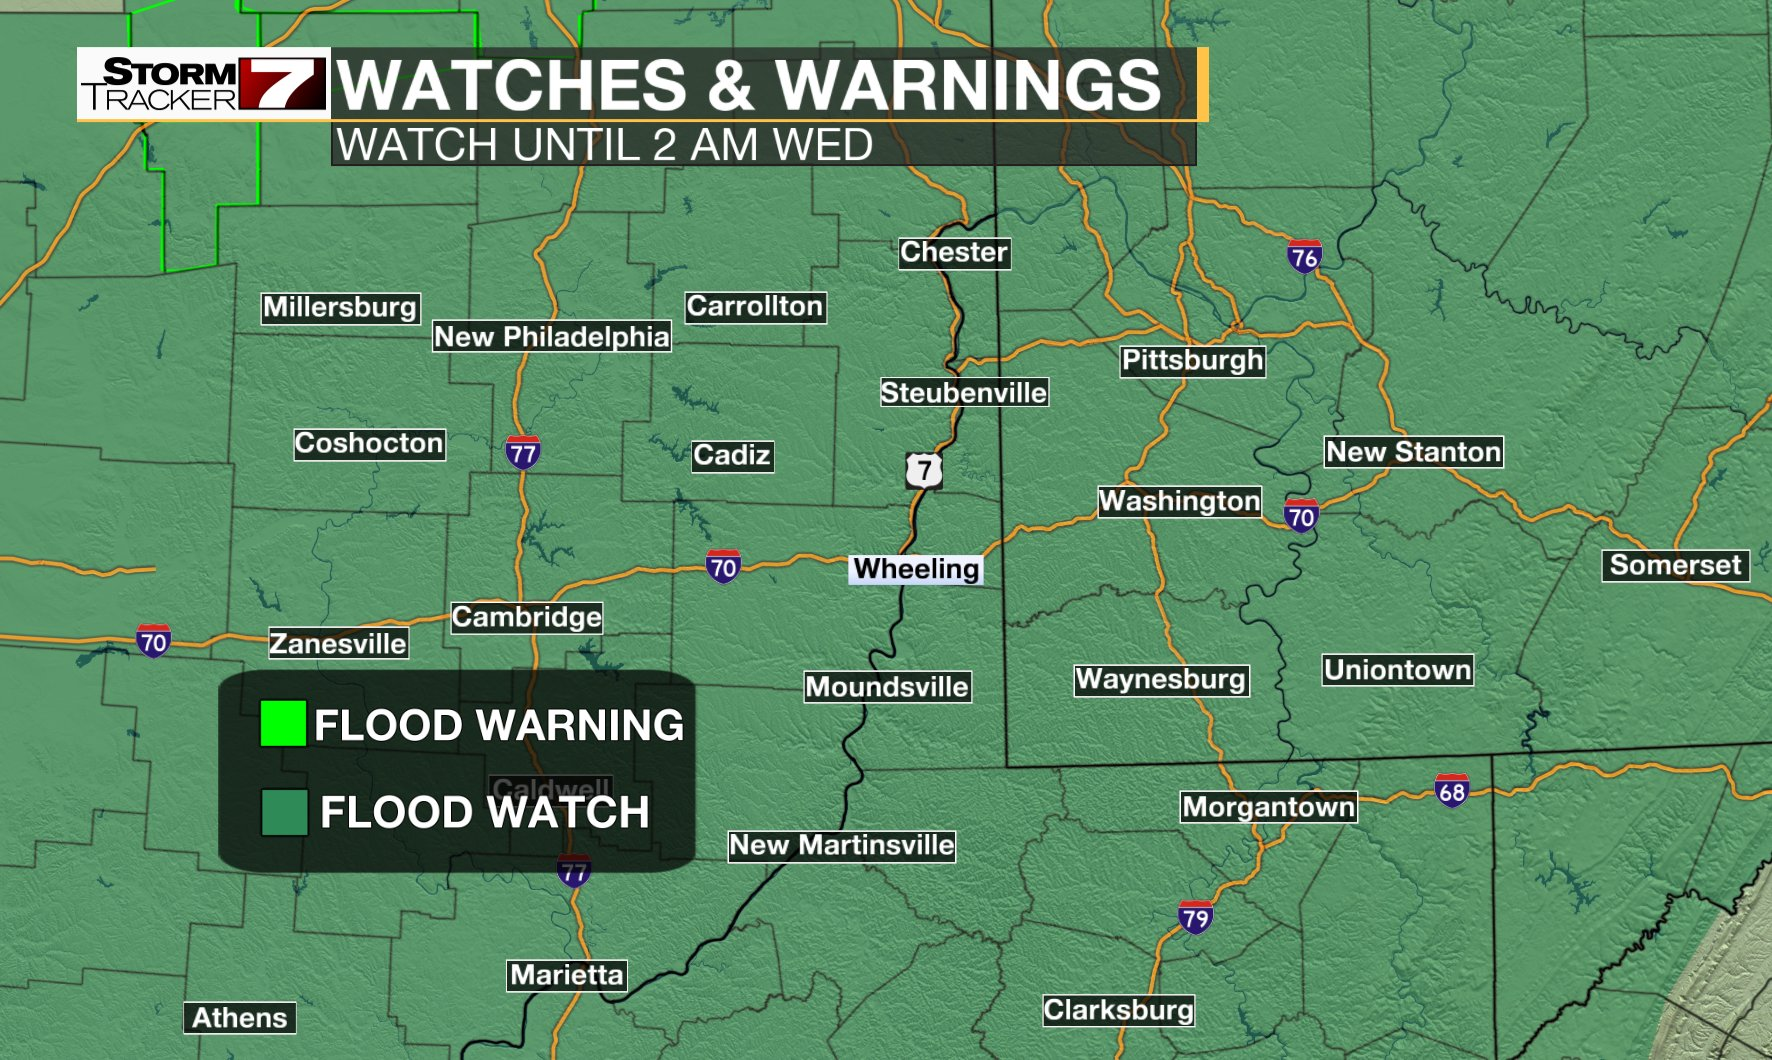 Severe weather may last overnight